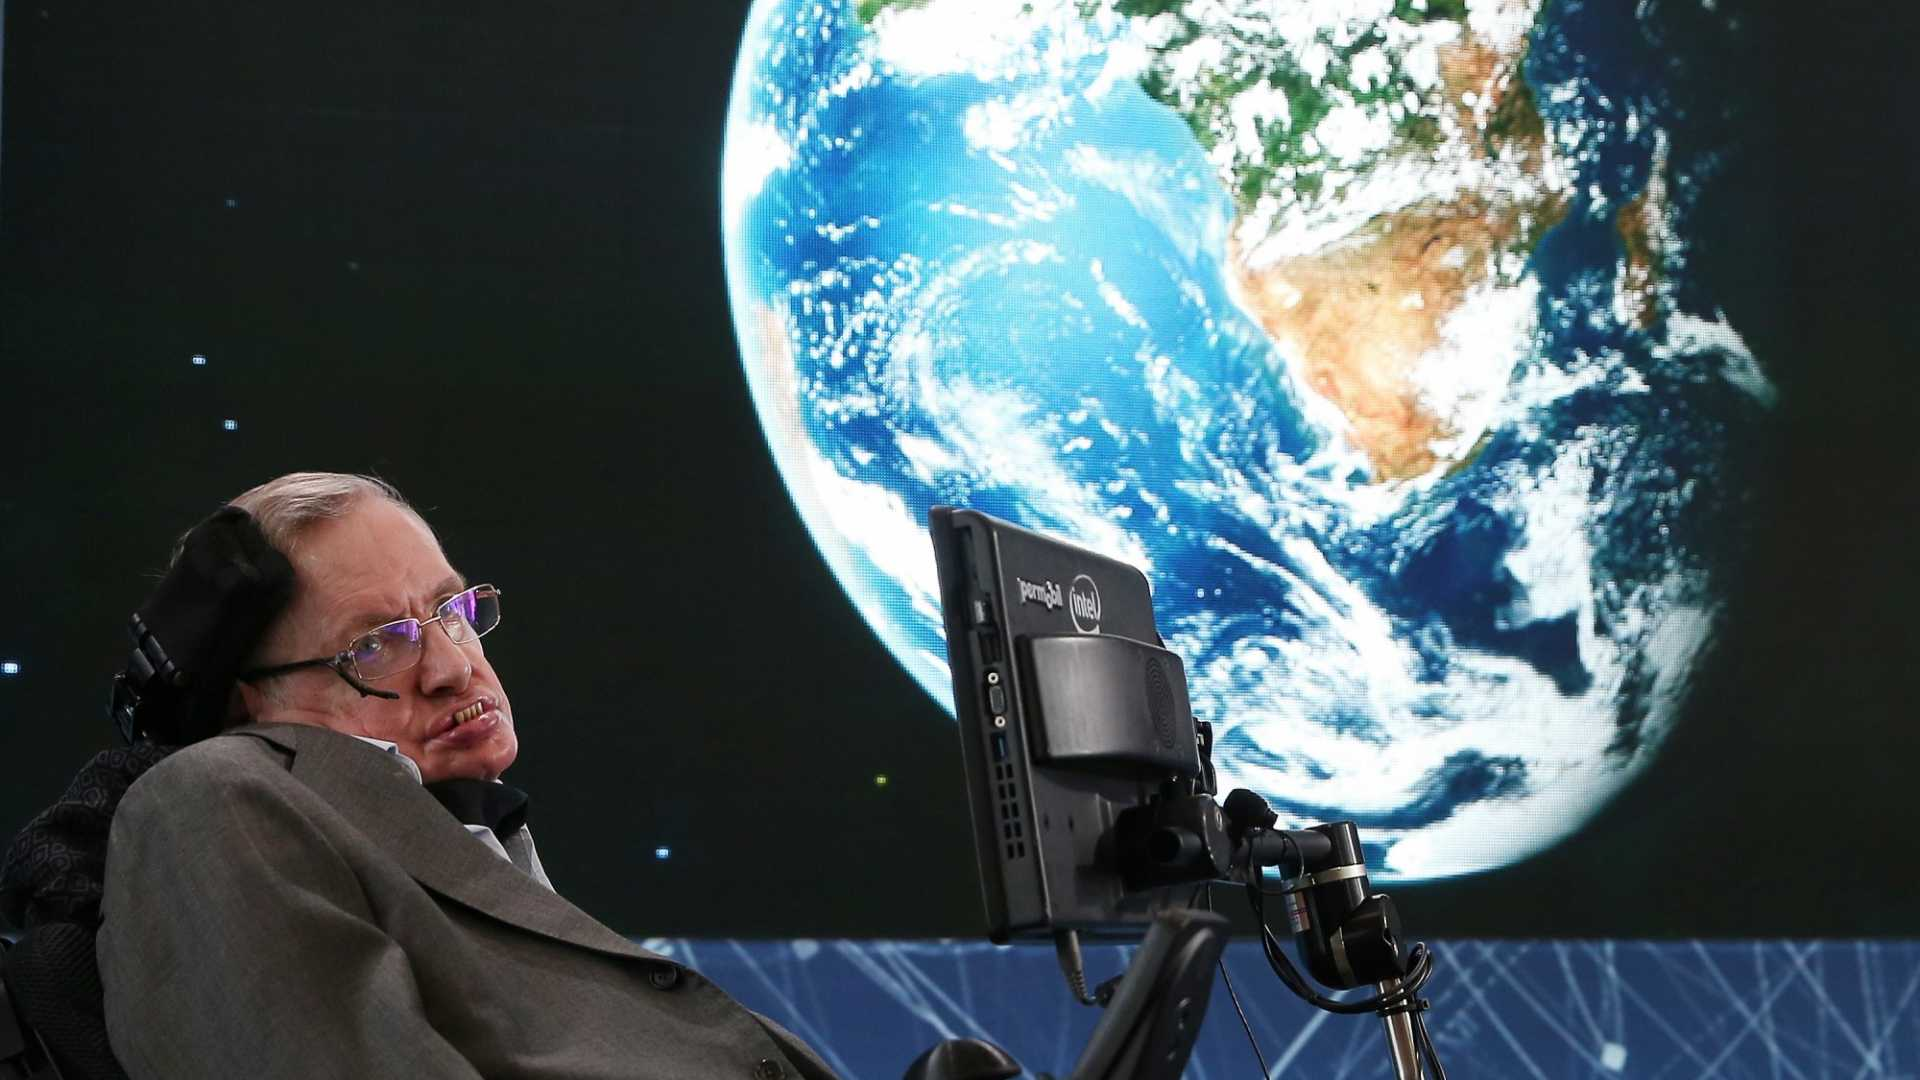 Want to Live a Long, Inspired Life? Try This Surprisingly Simple Advice From Stephen Hawking